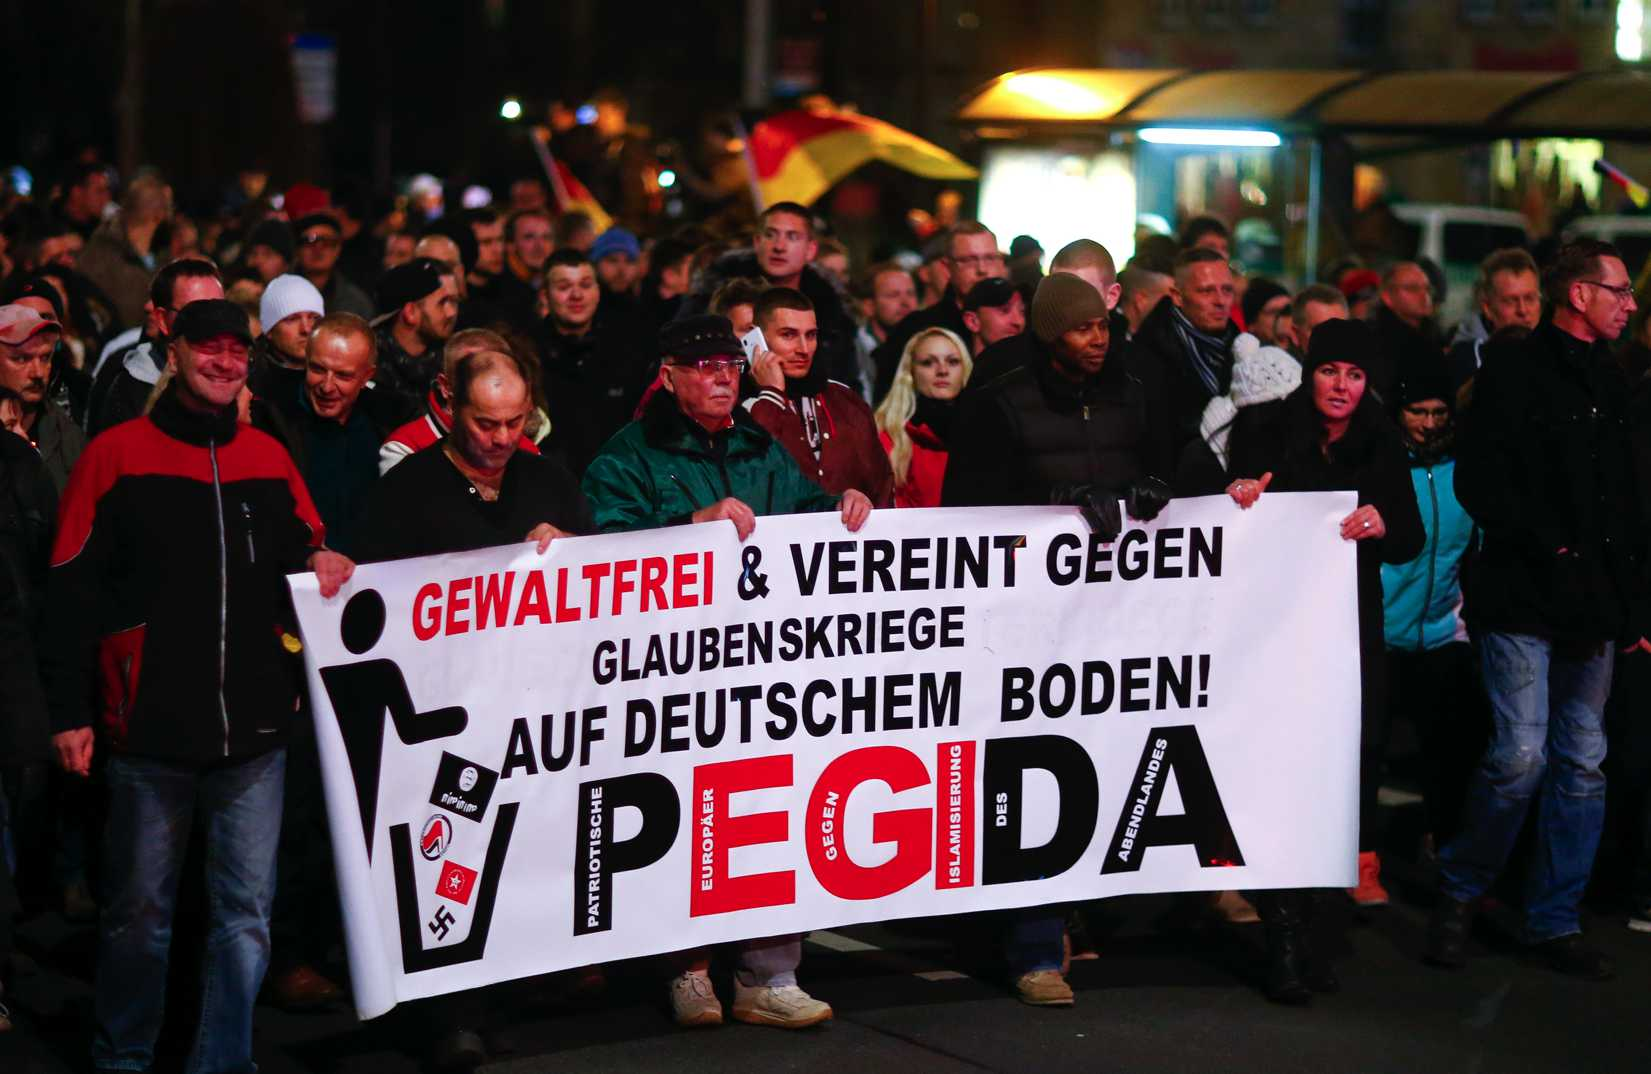 Participants hold a banner during a demonstration called by anti-immigration group Patriotic Europeans Against the Islamization of the West (Pegida) in Dresden, Germany, on Dec. 15, 2014